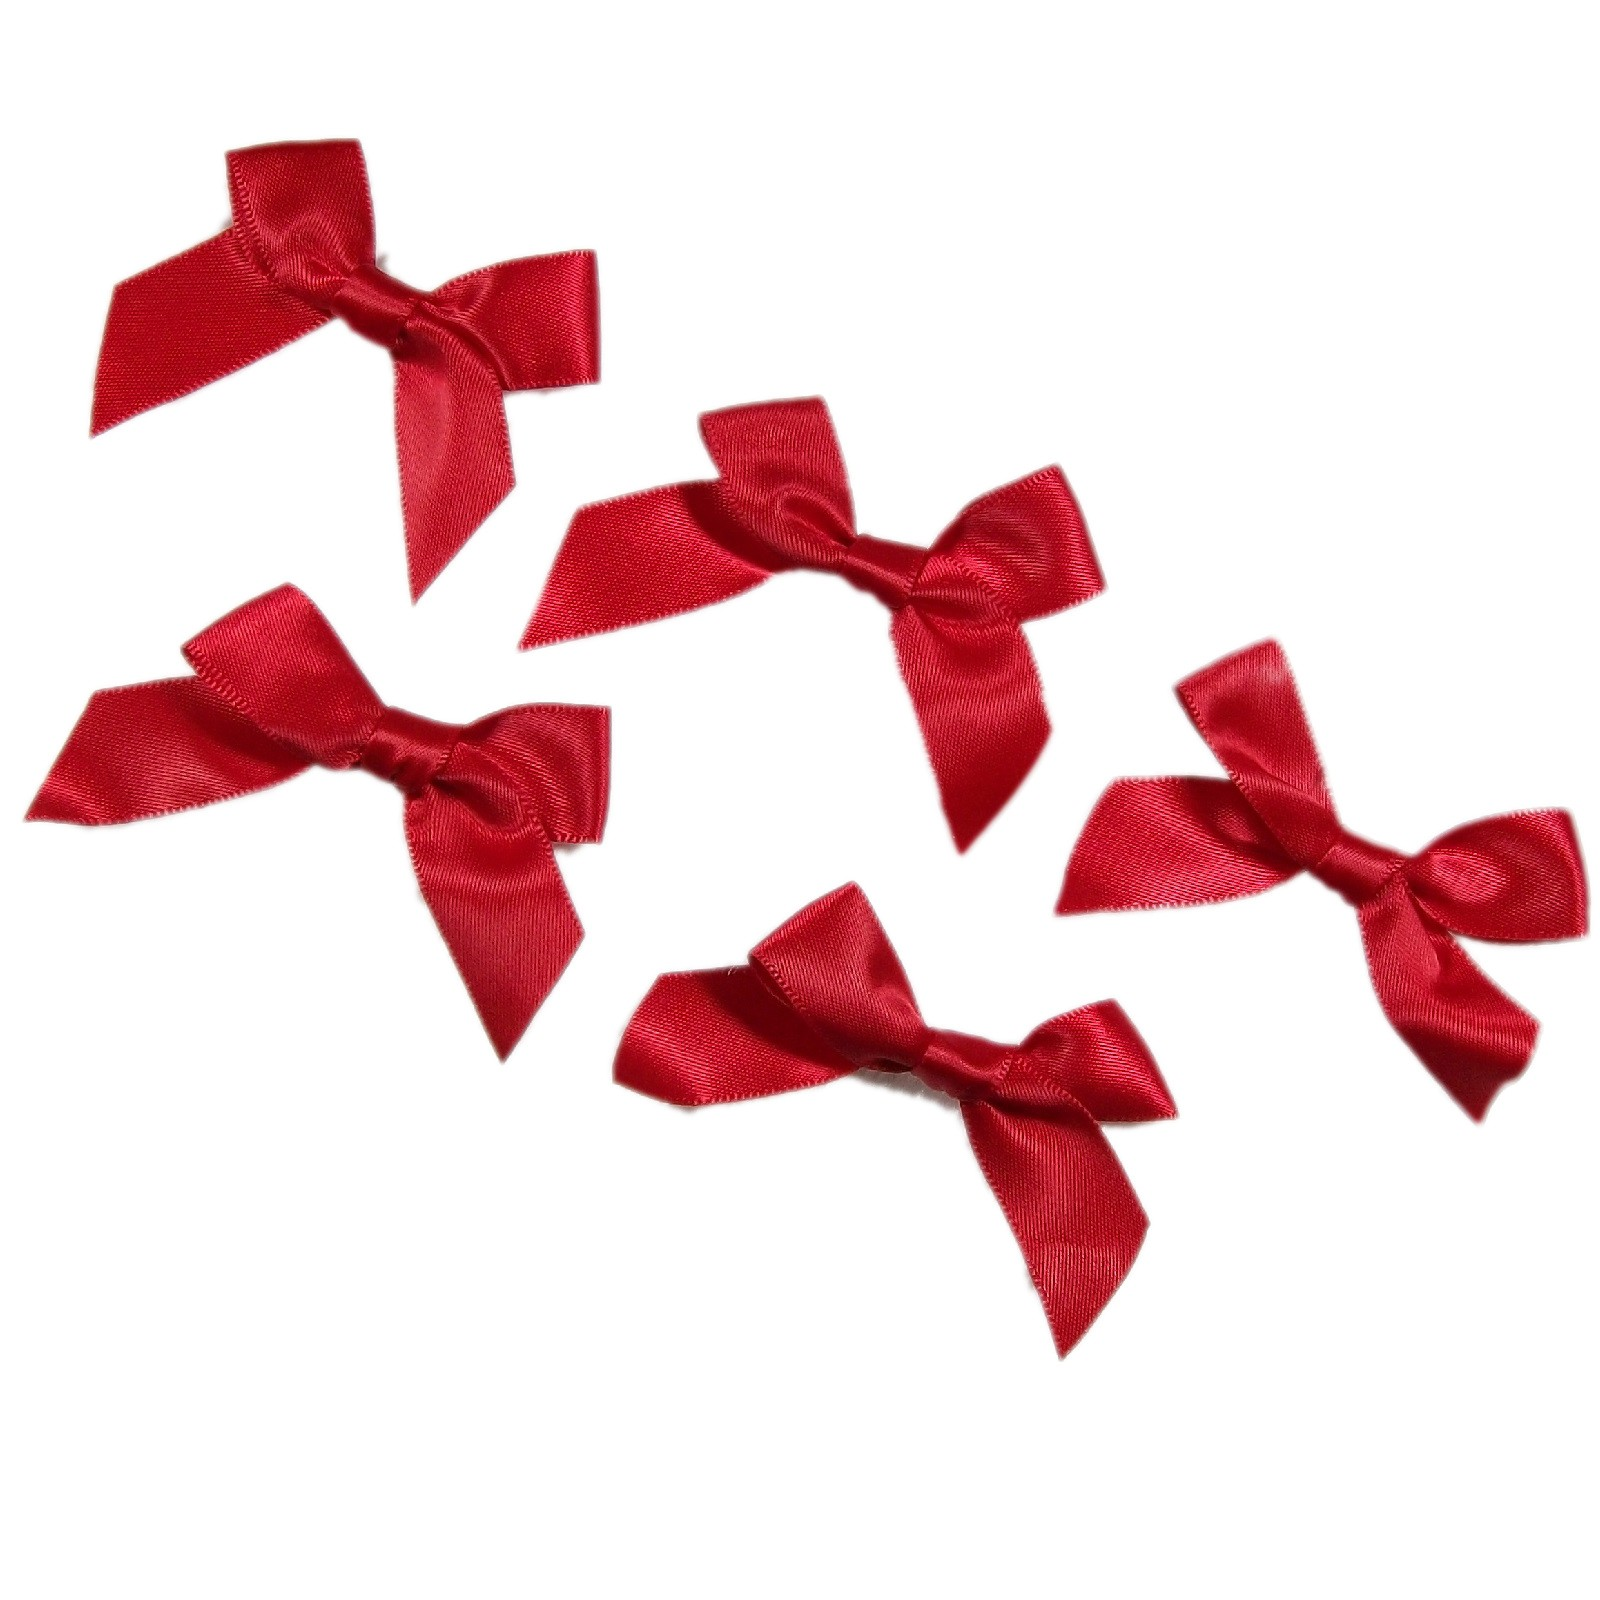 Satin Ribbon Bows approx 5.5cm wide Red Pack of 5